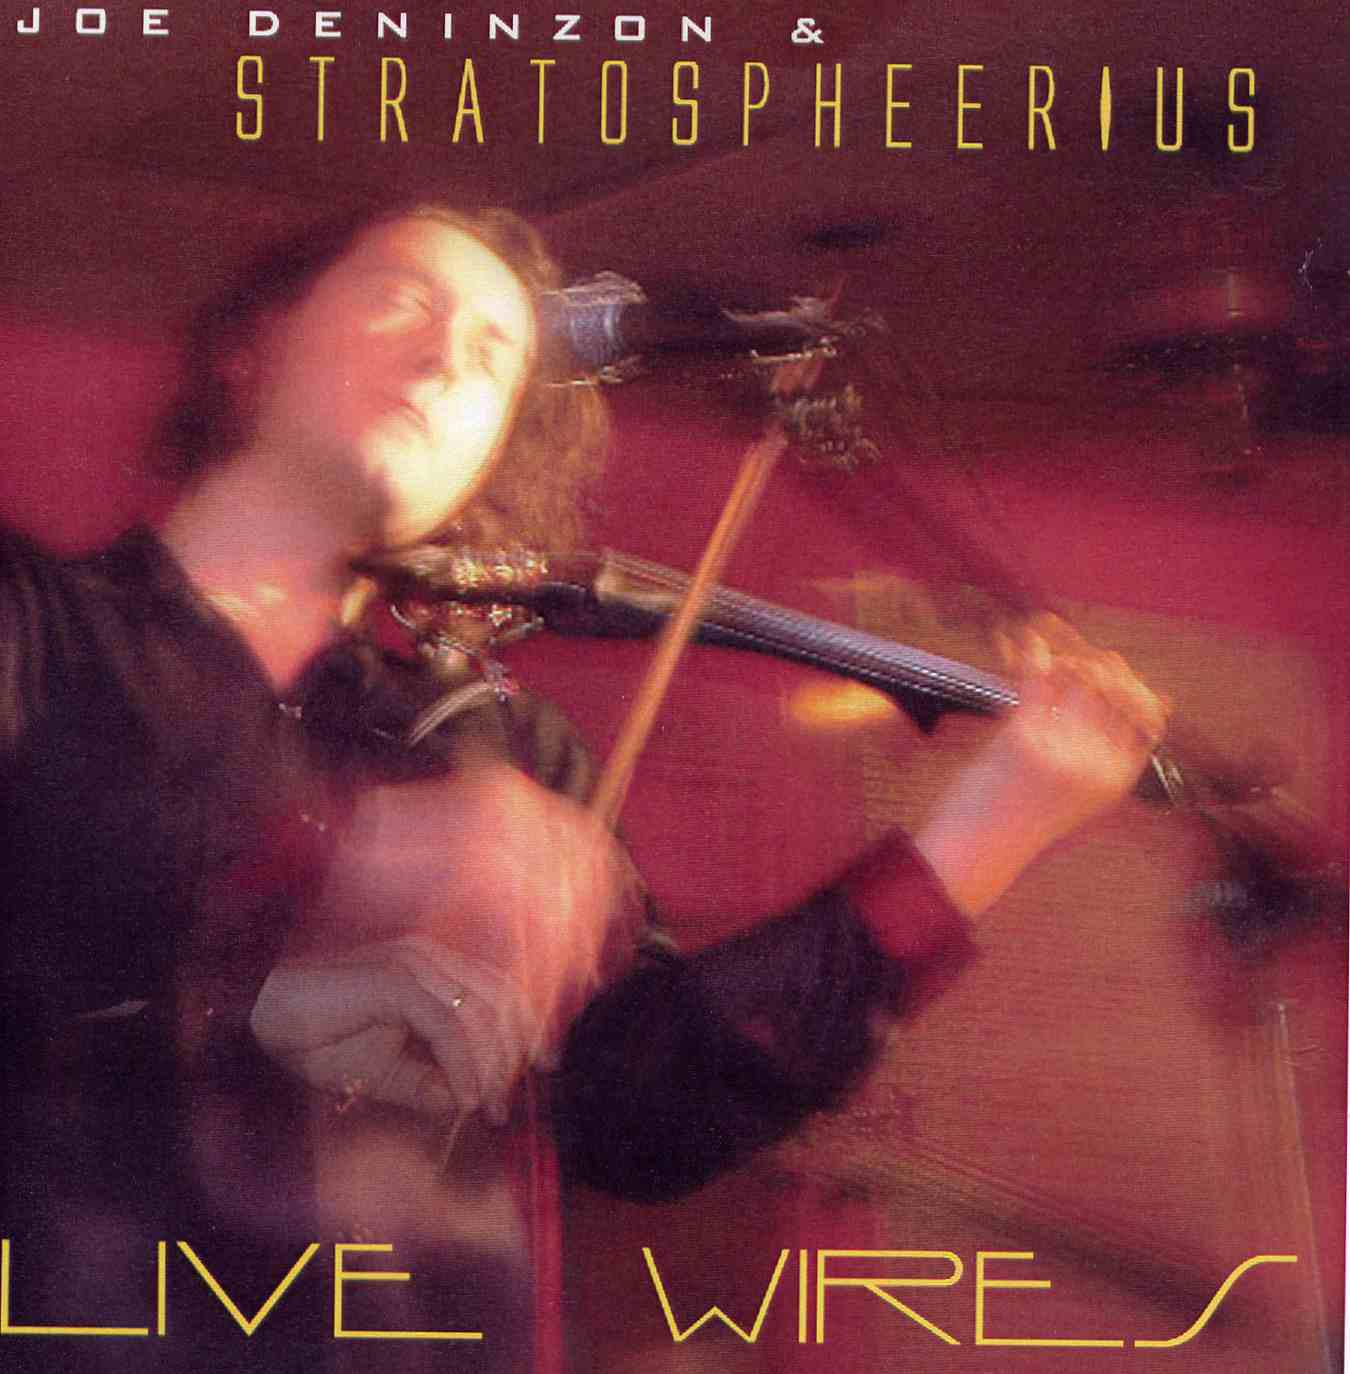 Live Wires Cover art